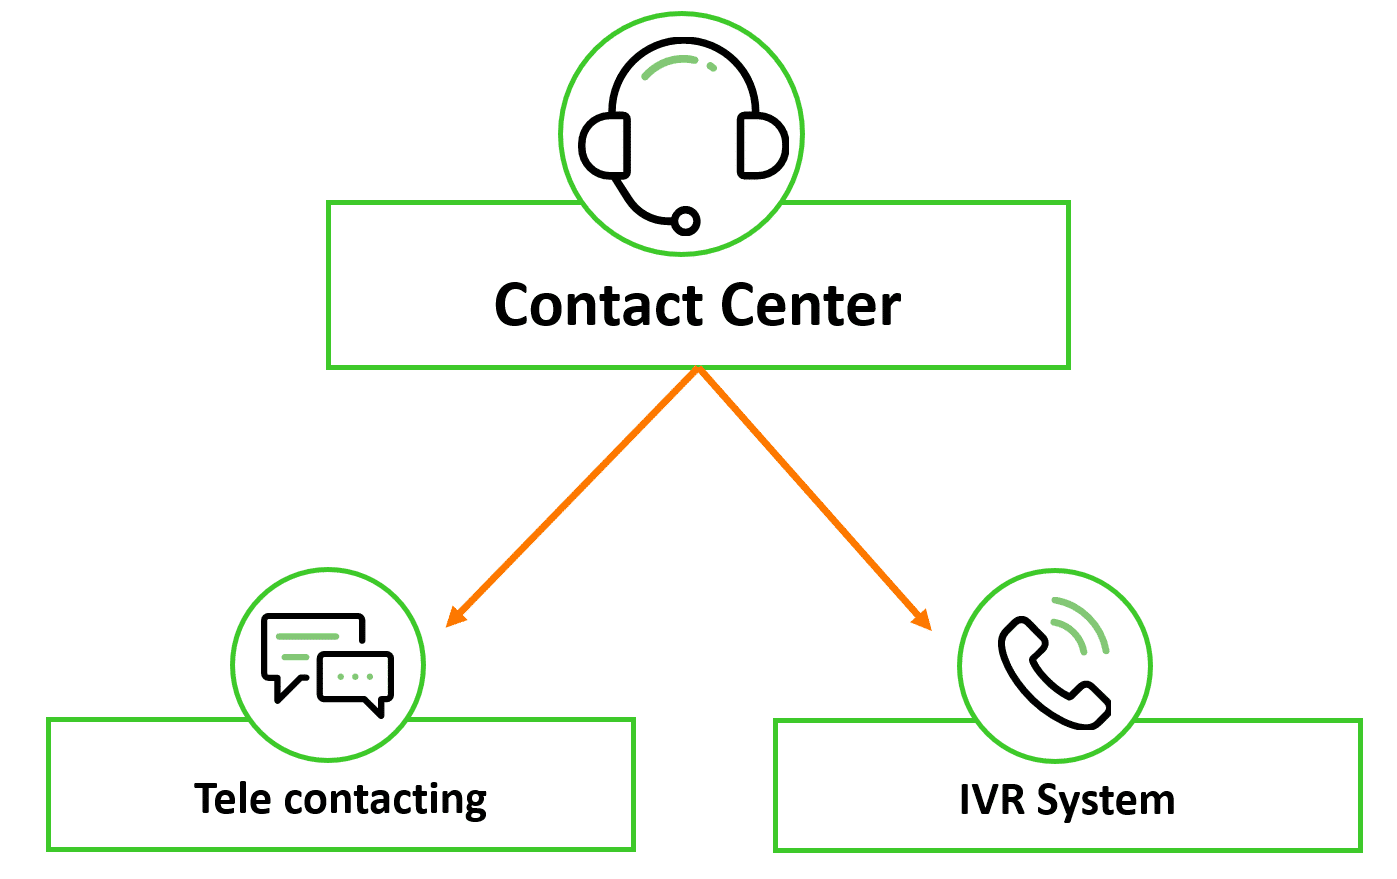 Contact Center Product family